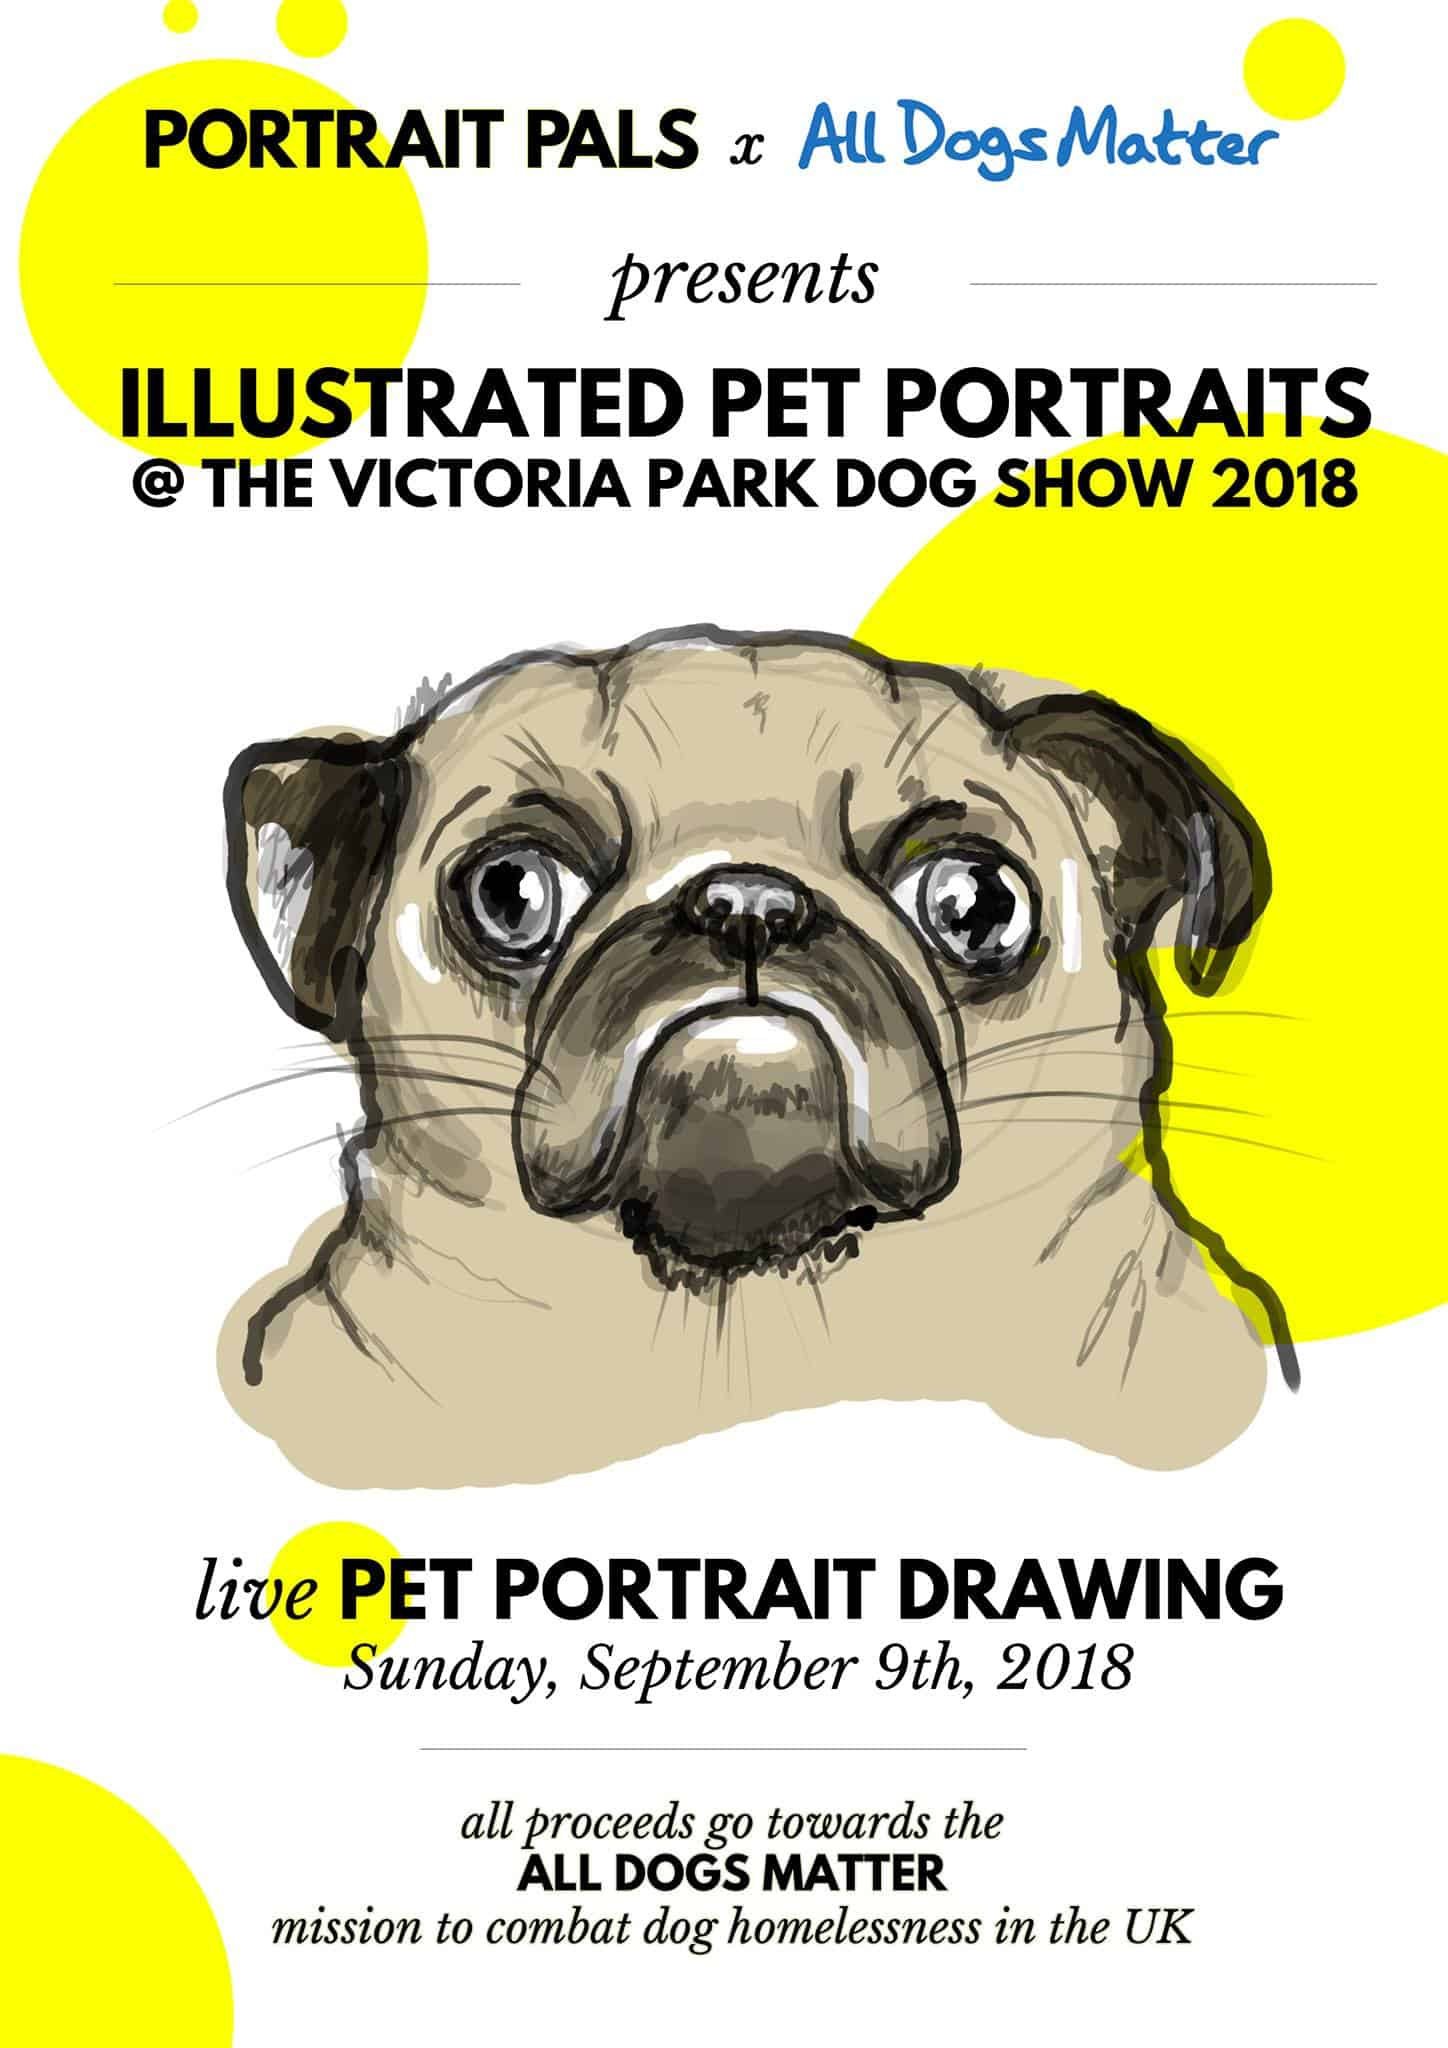 Live Illustrated Pet Portraits at the Victoria Park Dog Show